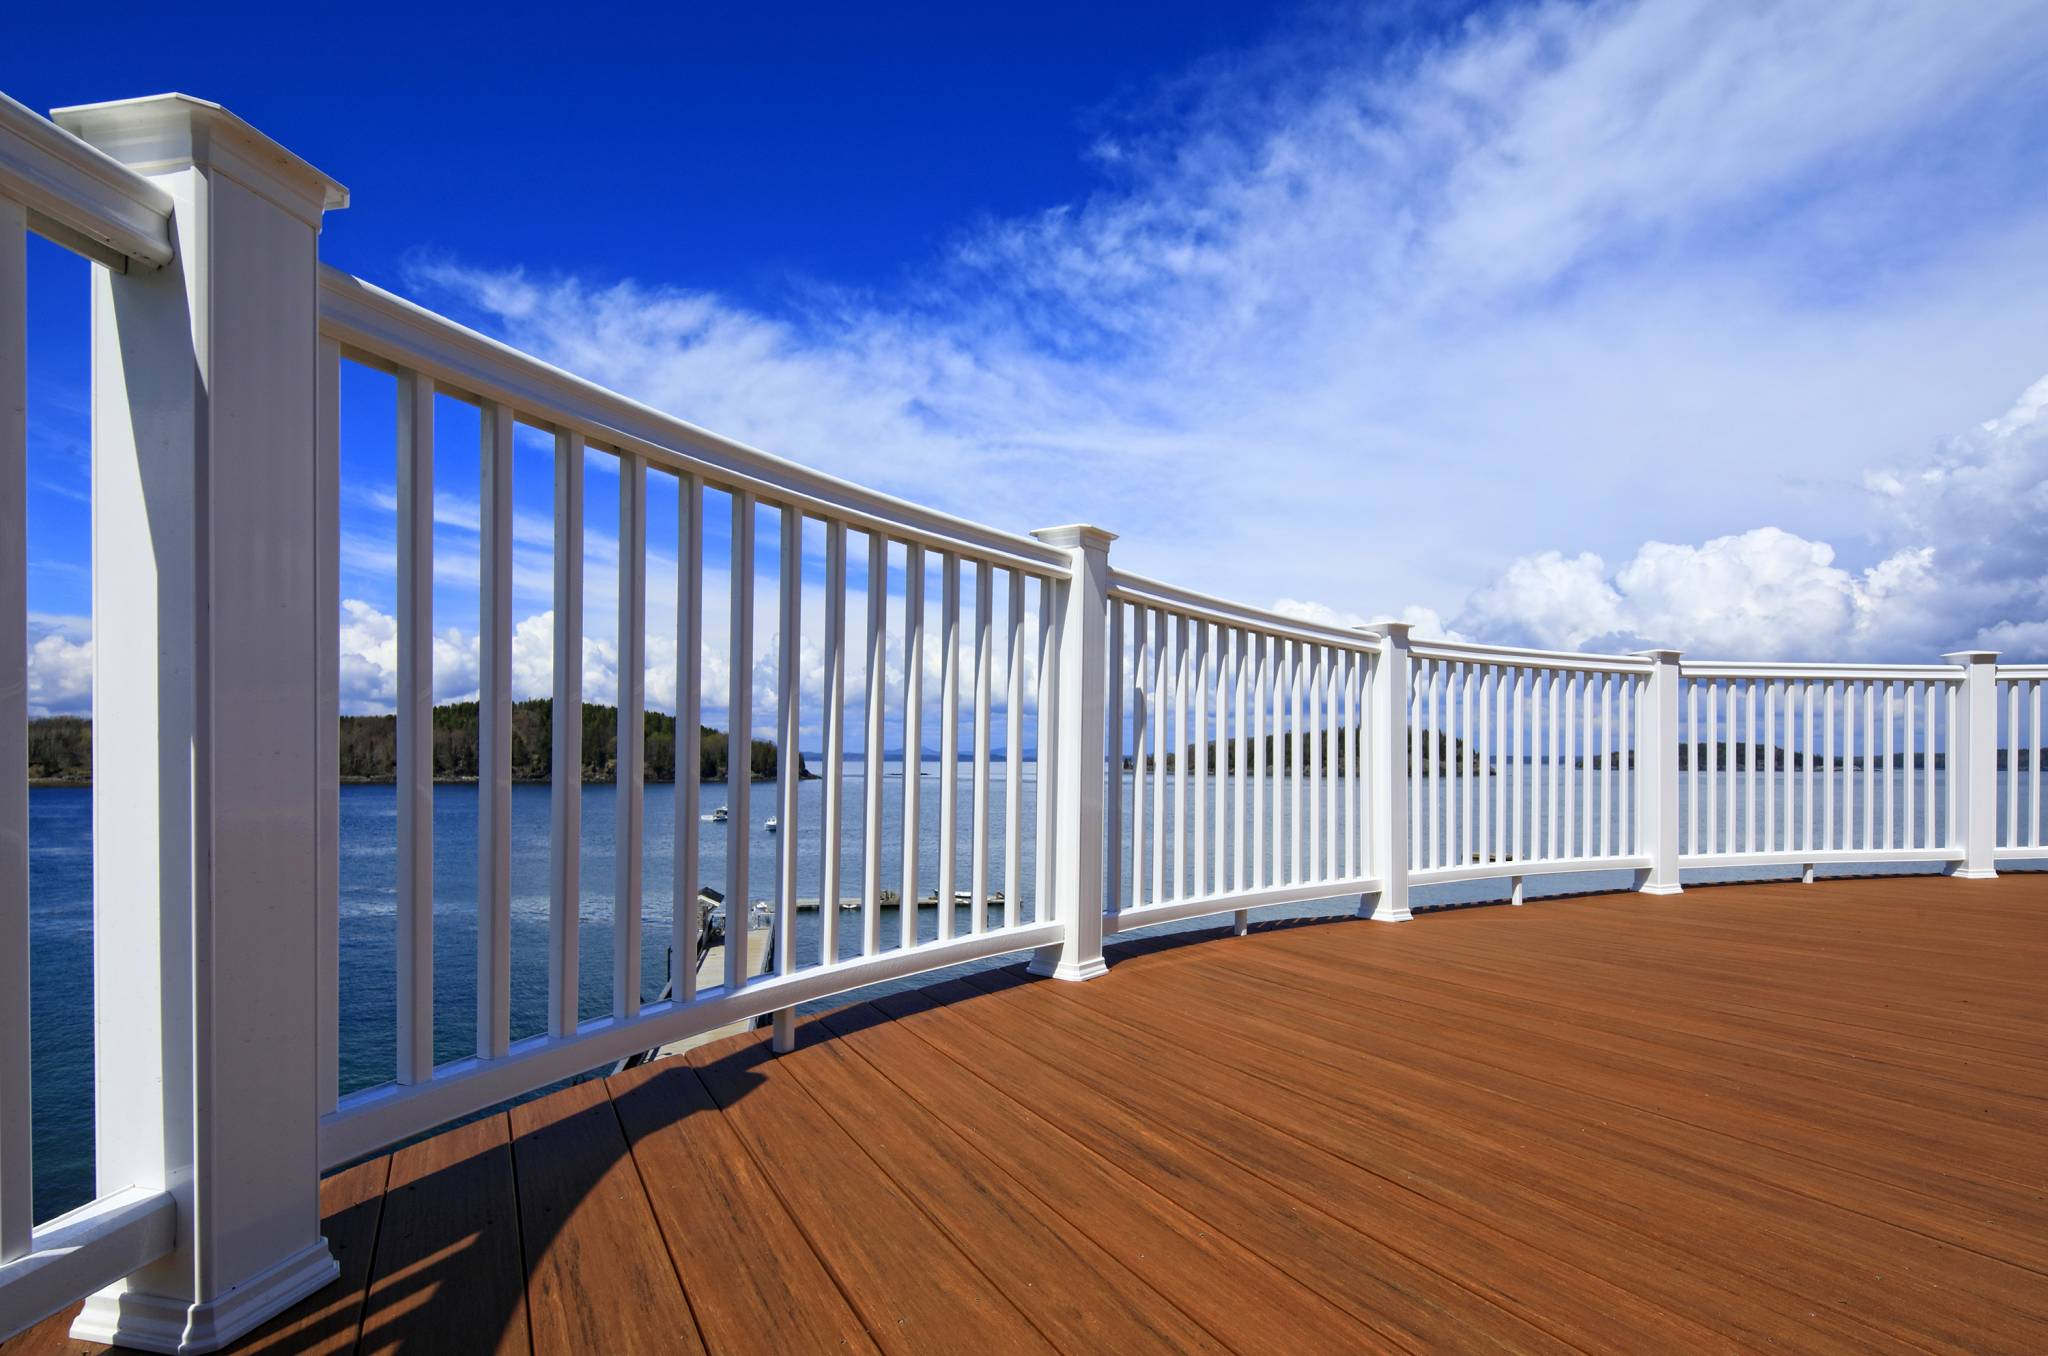 architectural photography location photography Azek residential decking & trim Buffalo advertising photographer